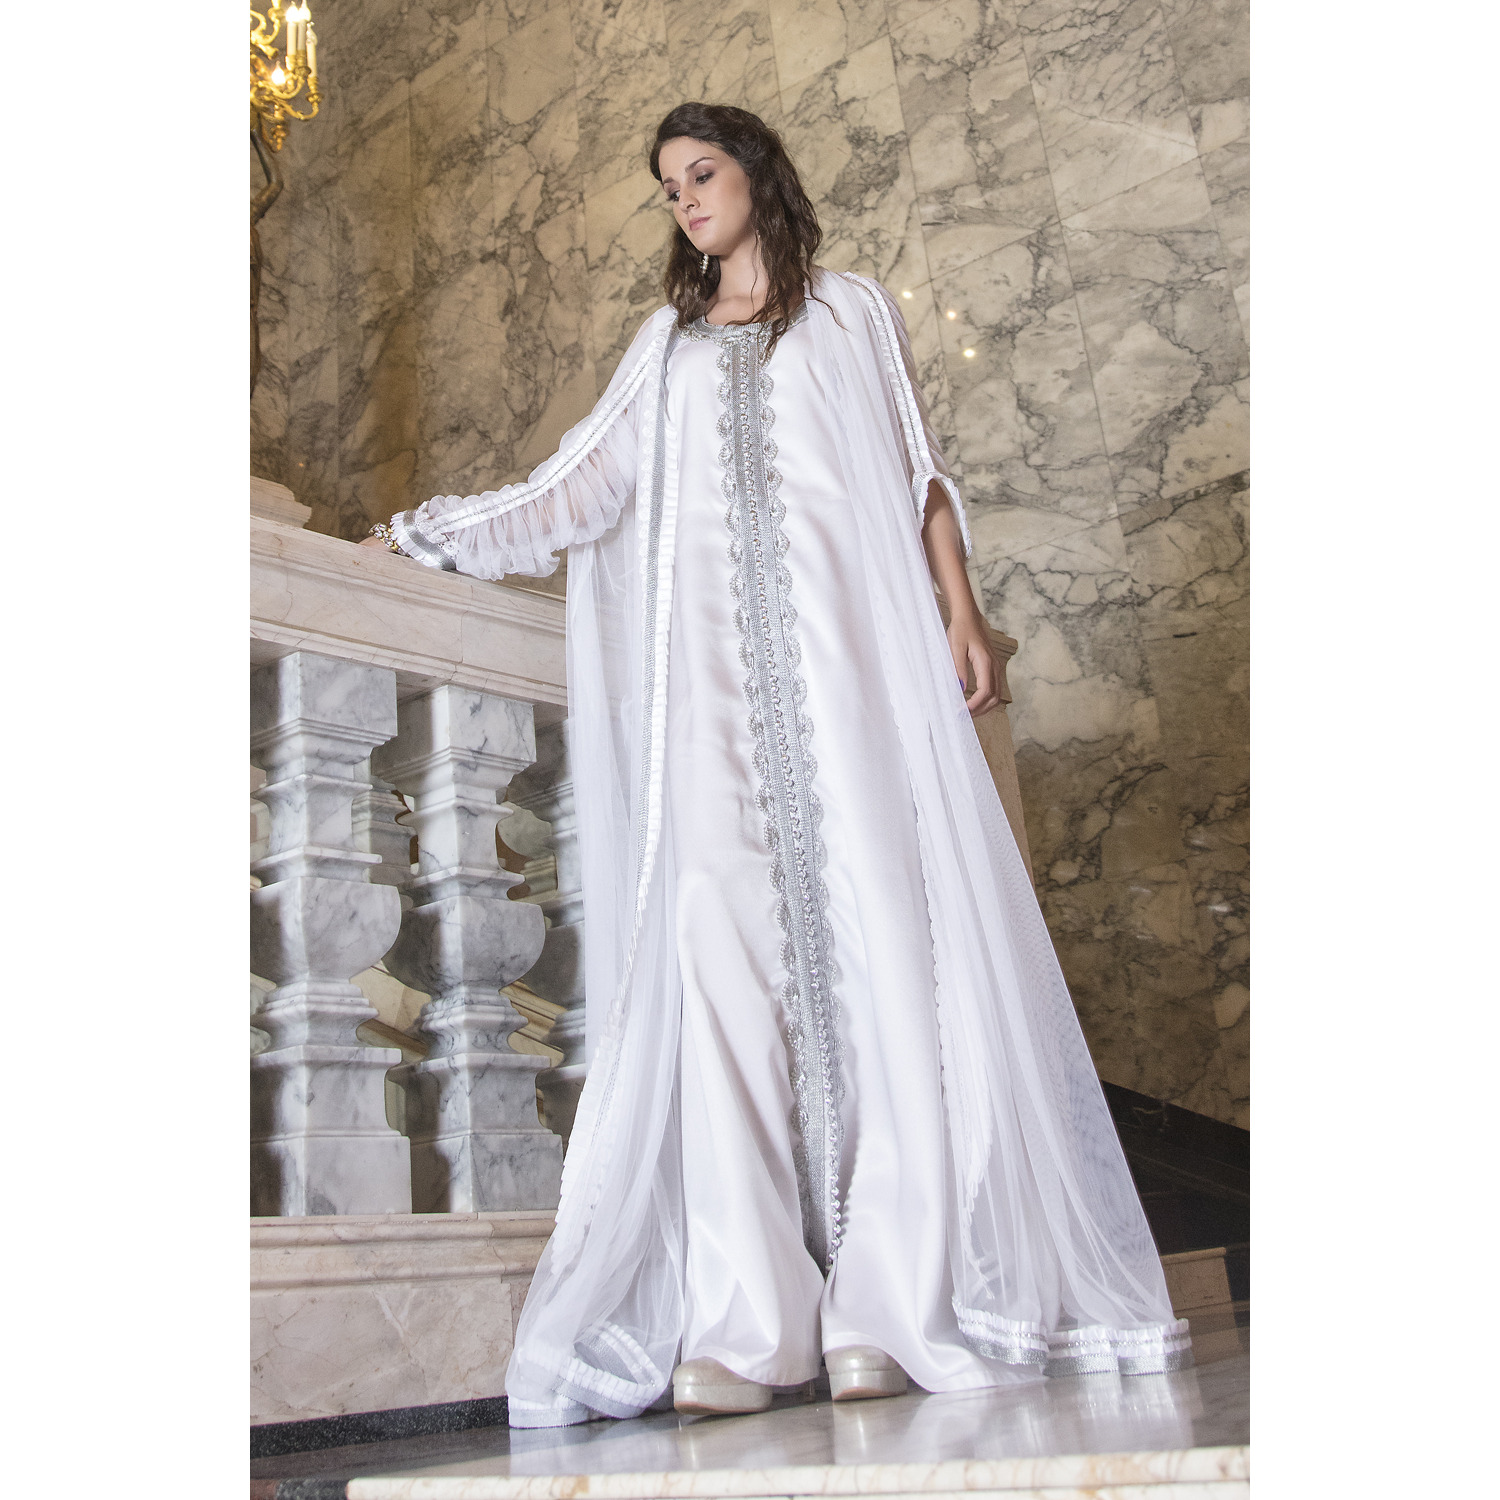 Moroccan Long Sleeve Wedding Caftan White Color With Lace Work